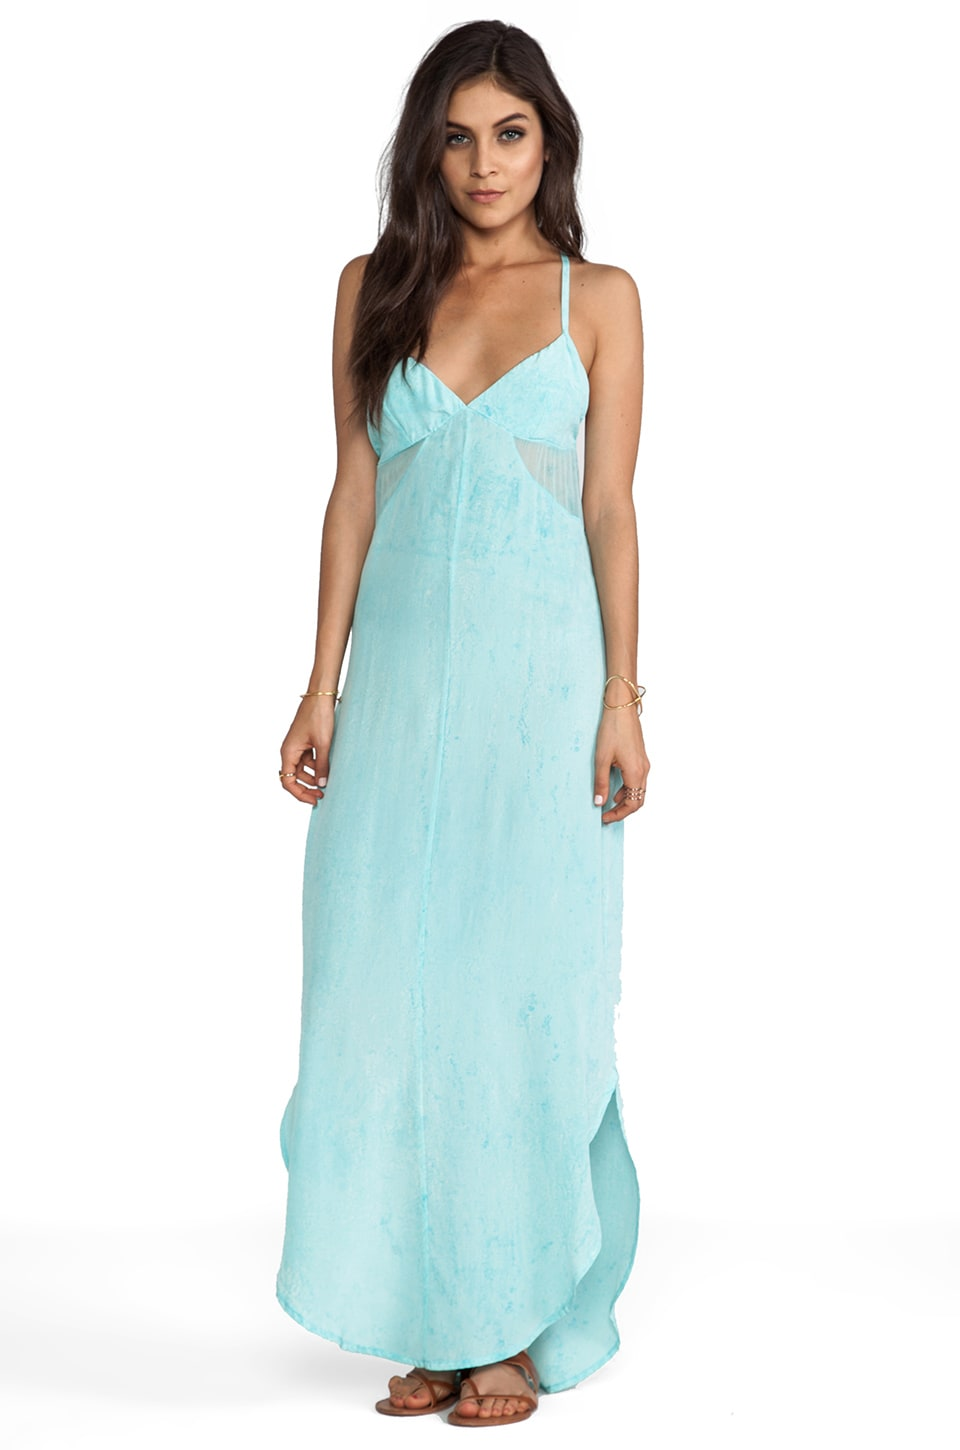 Gypsy 05 Soka Geo Cutout GGT V-Bottom Cami Maxi Dress in Pool